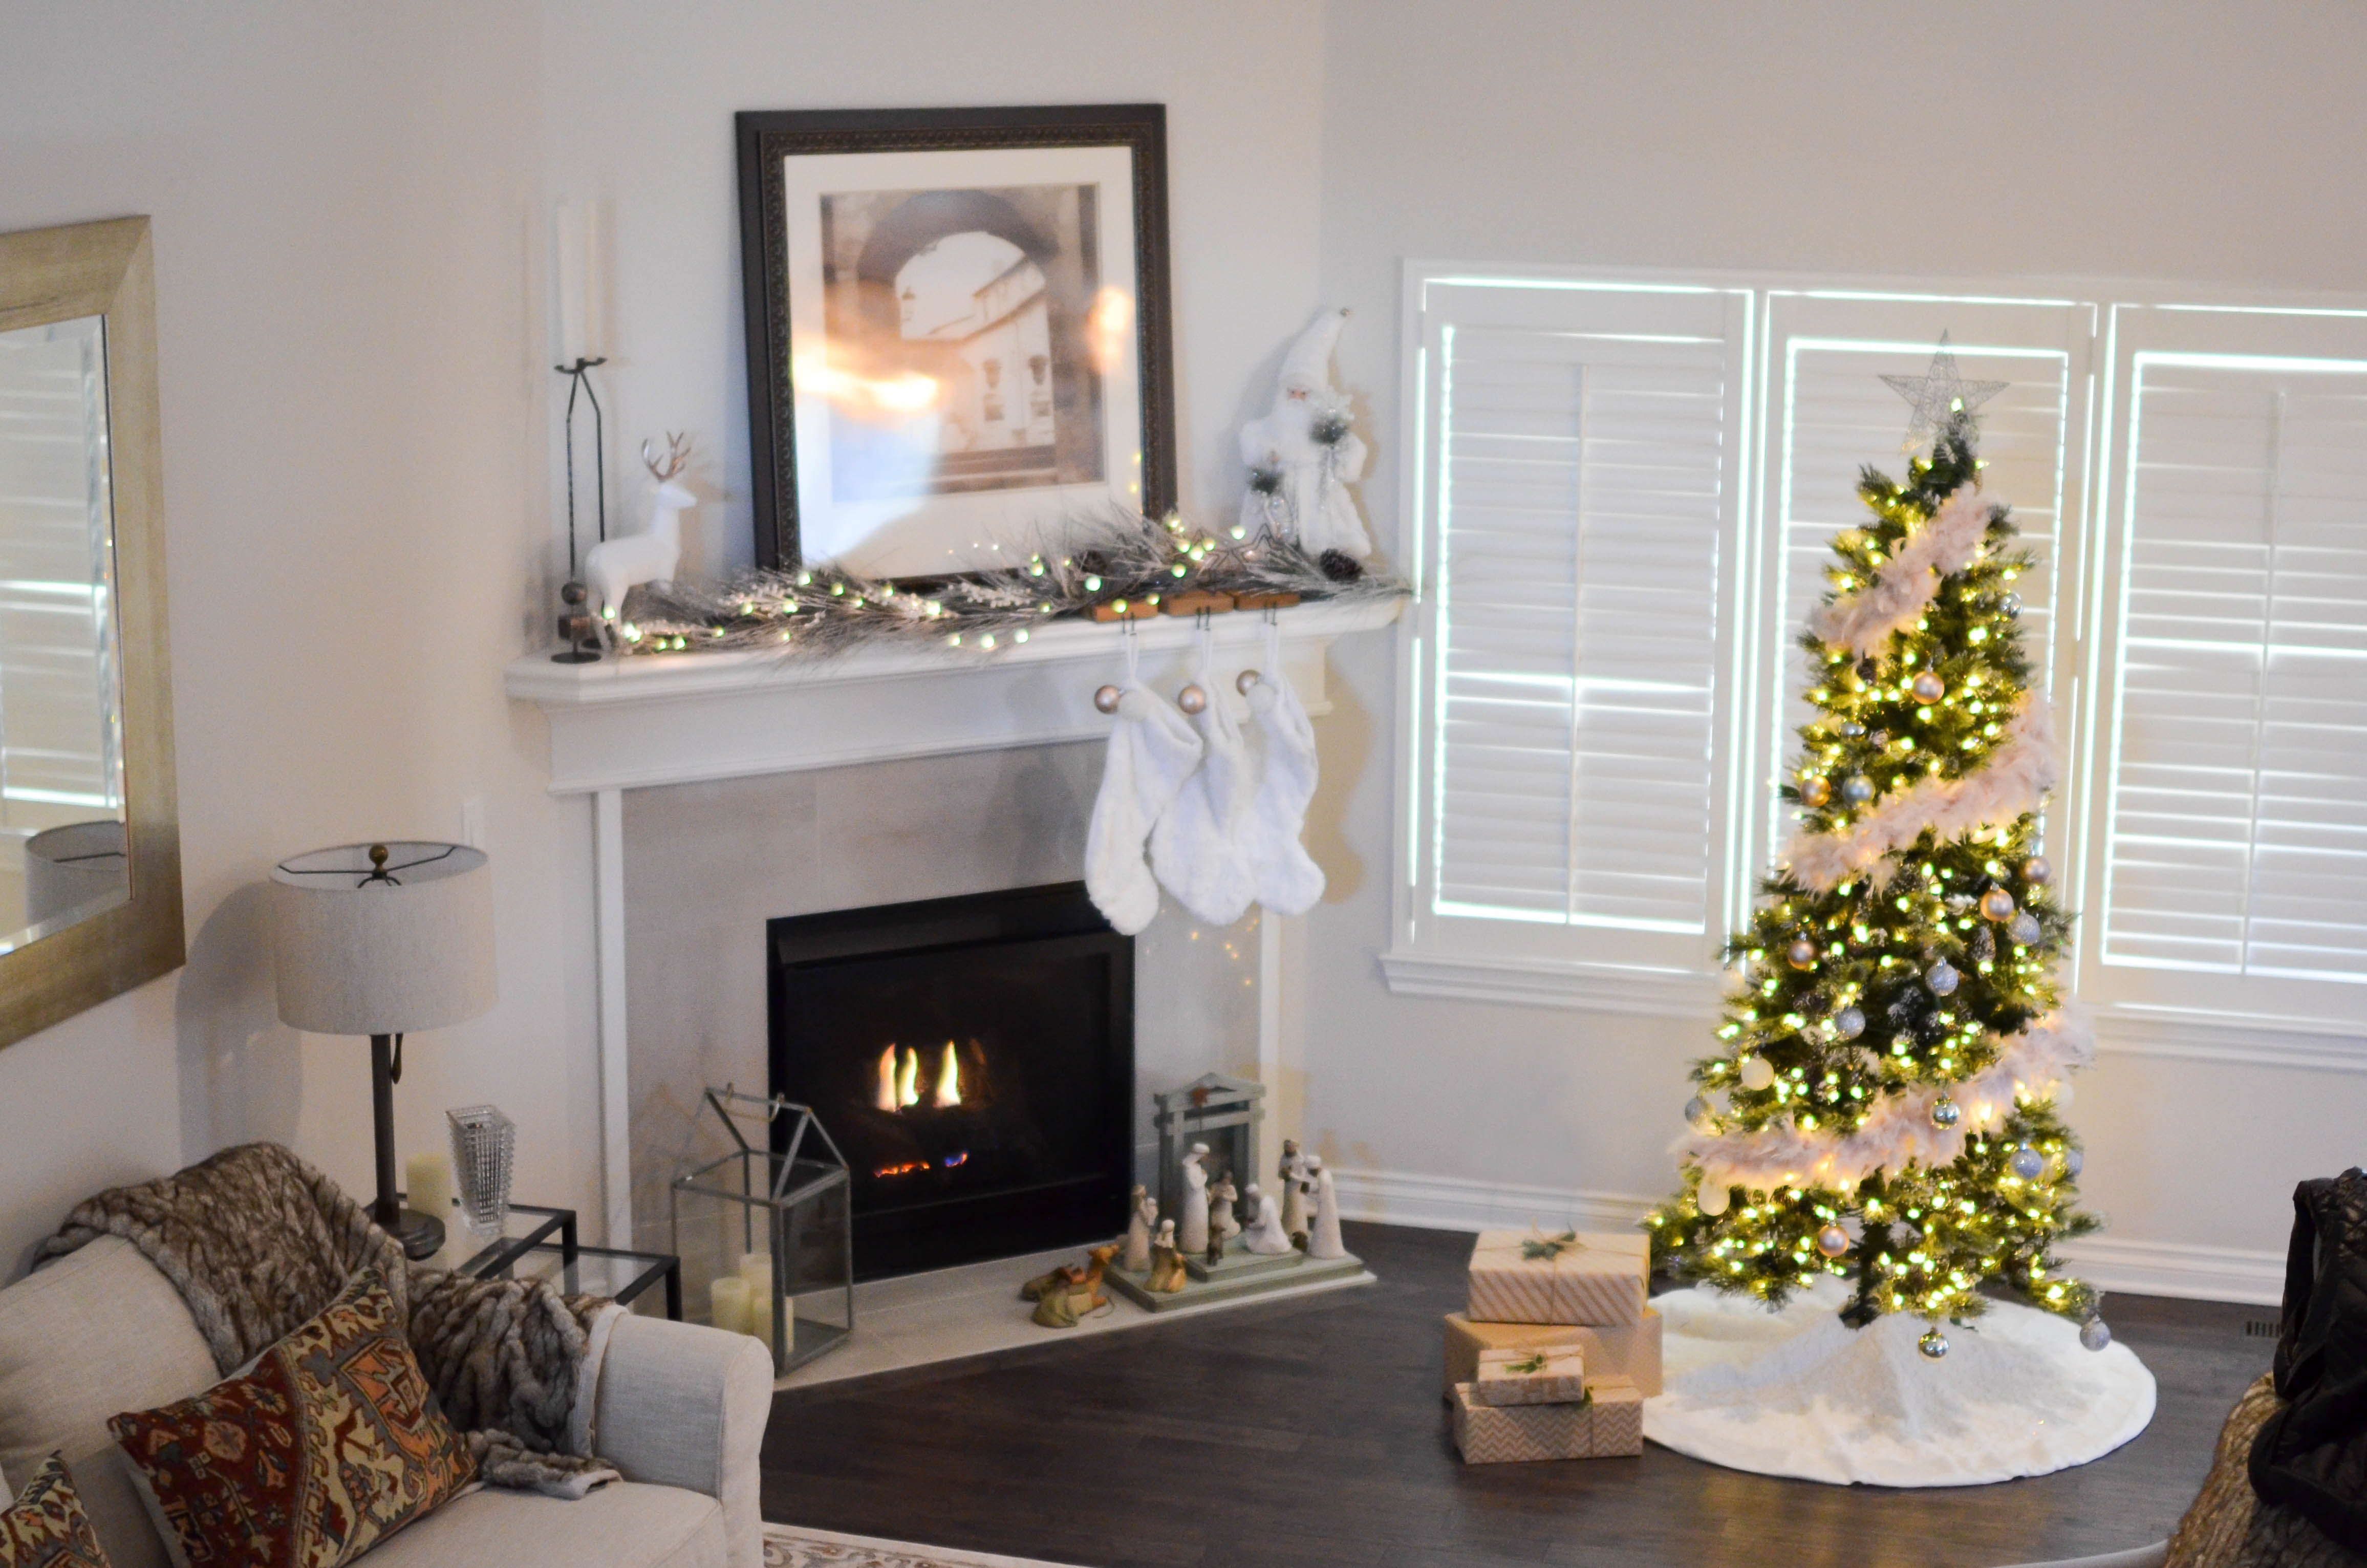 Green and white pre-lit pine tree near fireplace inside well lit room photo